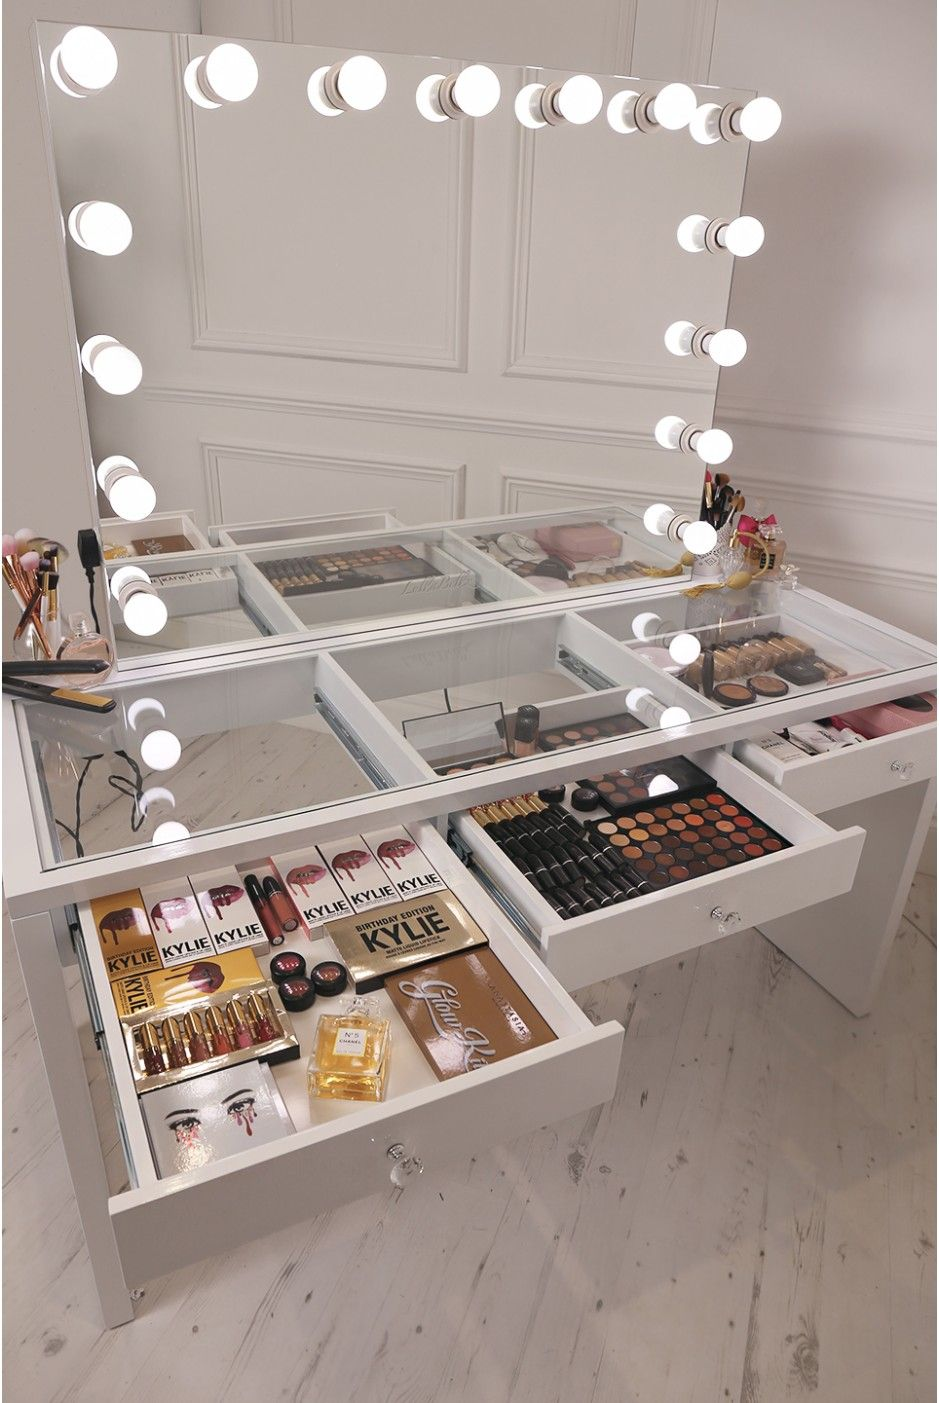 How To Make A Vanity Mirror With Lights Impressive Crisp White Finish Slaystation Make Up Vanity With Premium Storage Decorating Design